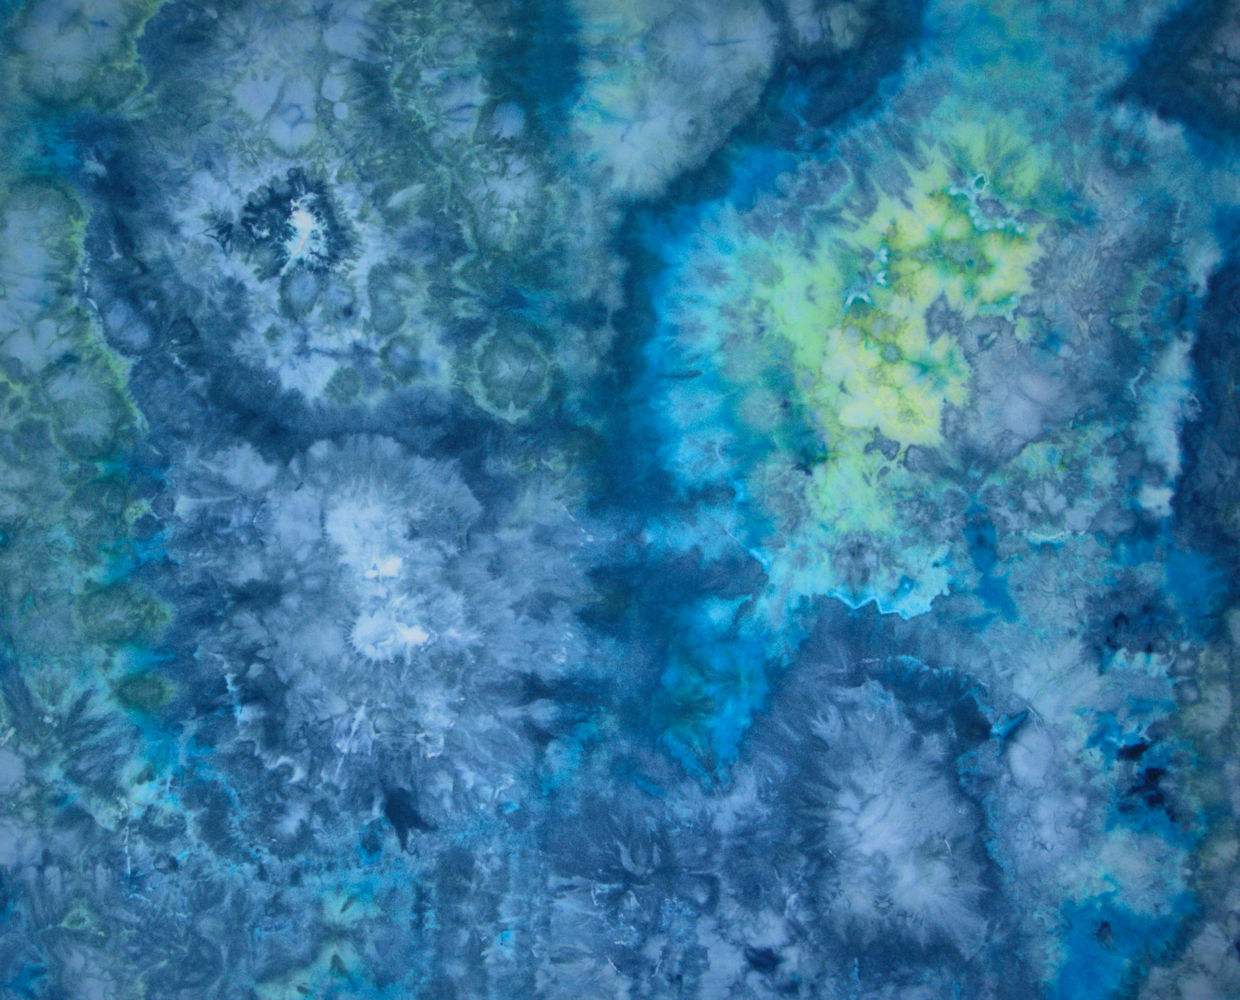 Blue, green and turquoise ice dyed fabric